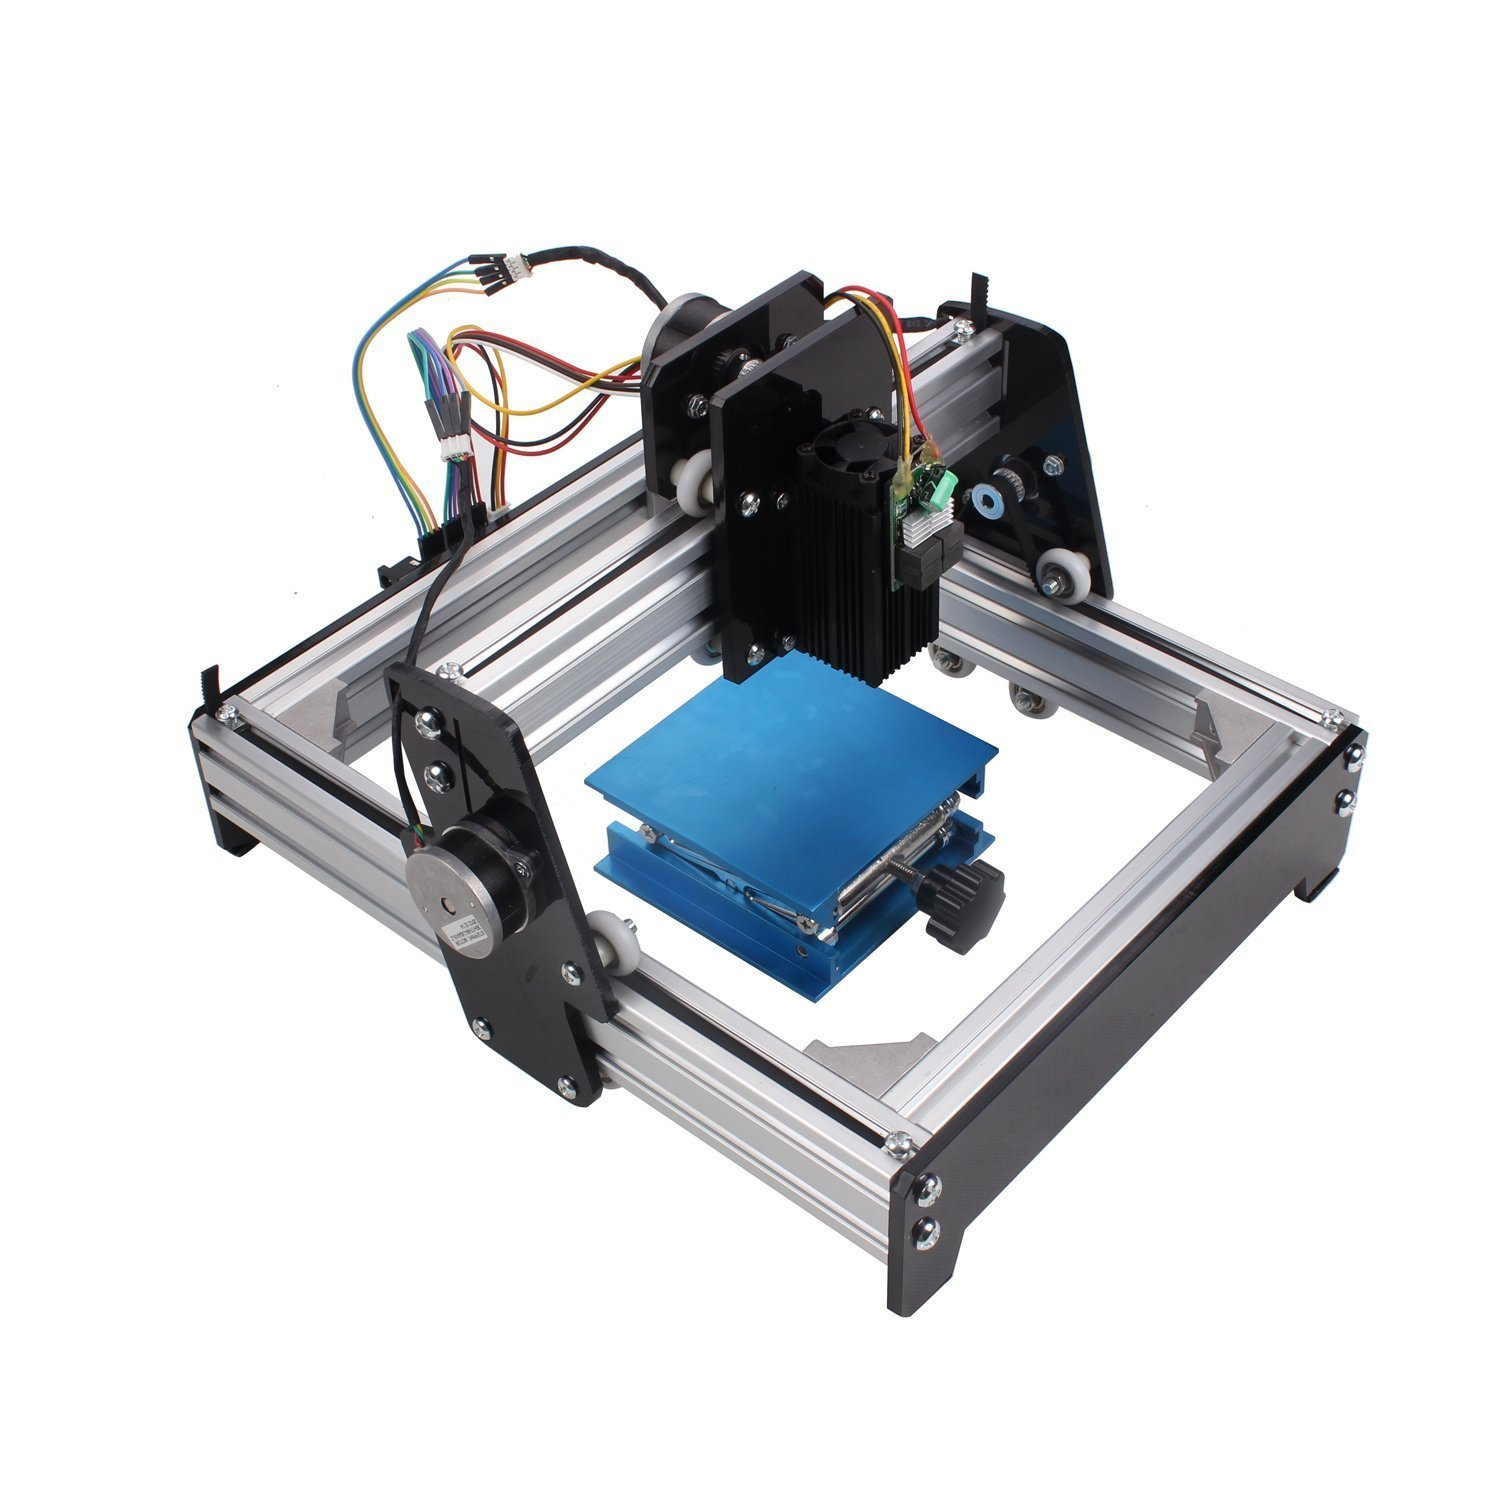 Sunwin 15w Mini Diy Laser Engraver Metal Steel Iron Stone Wood Image Lab Equipment How To Etch Your Own Circuit Boards Using A Logo Print Marking Industrial Scientific